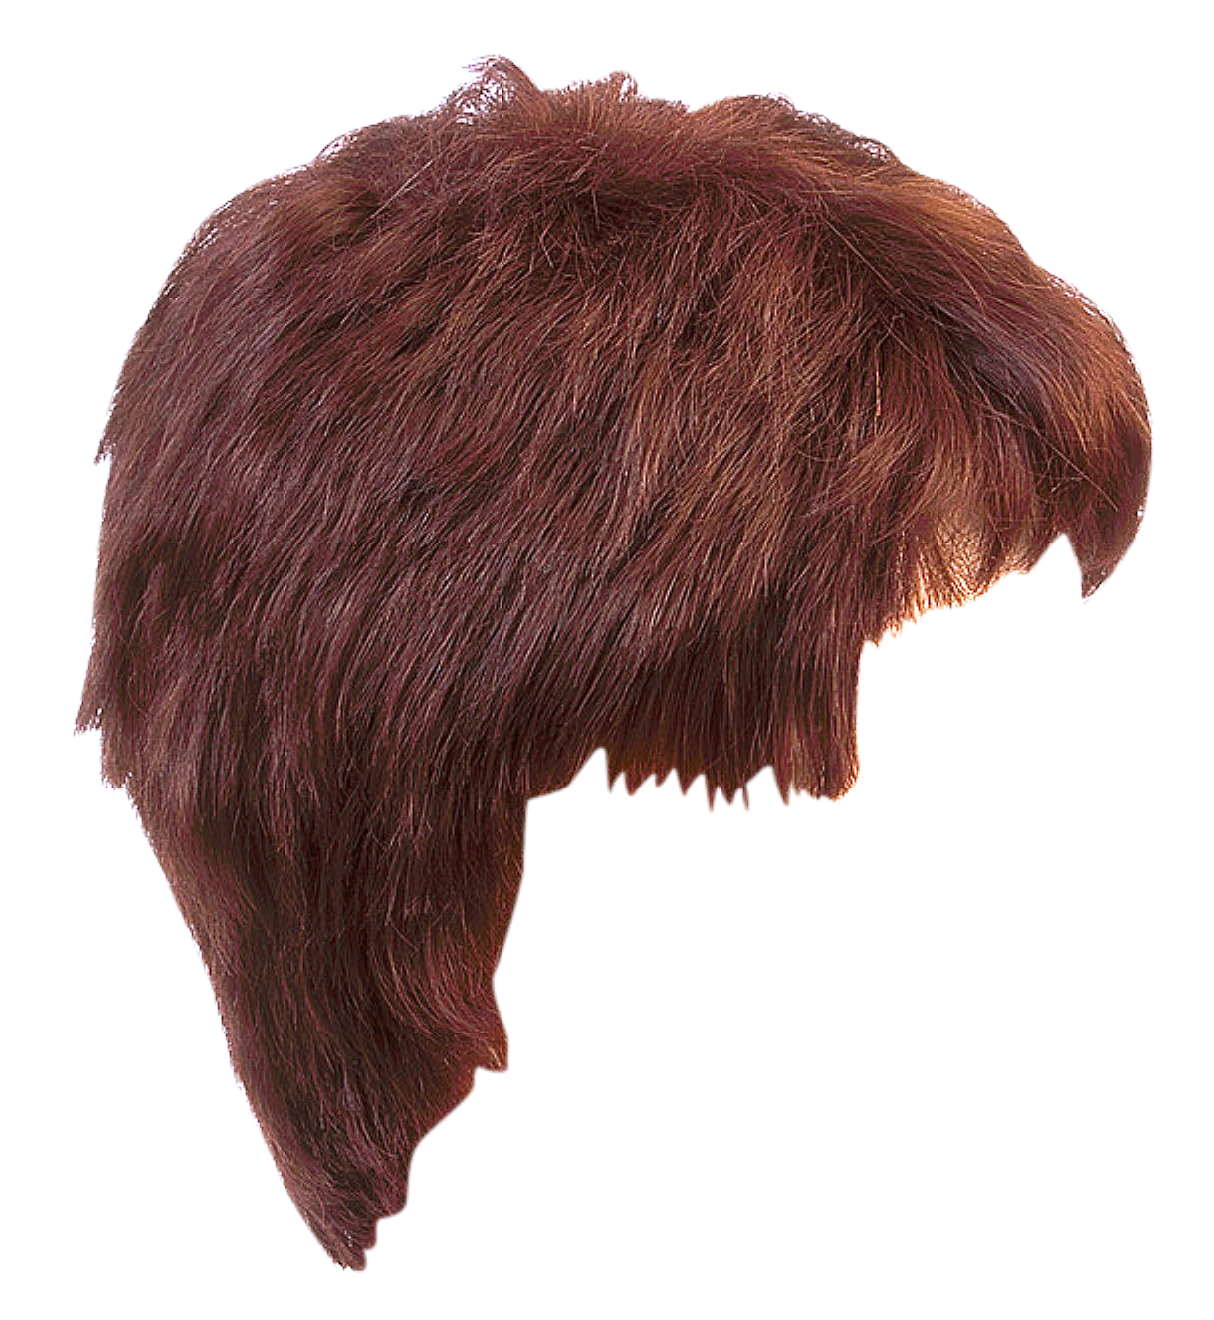 Png Hairstyle Transparent Hairstyleg Images Pluspng